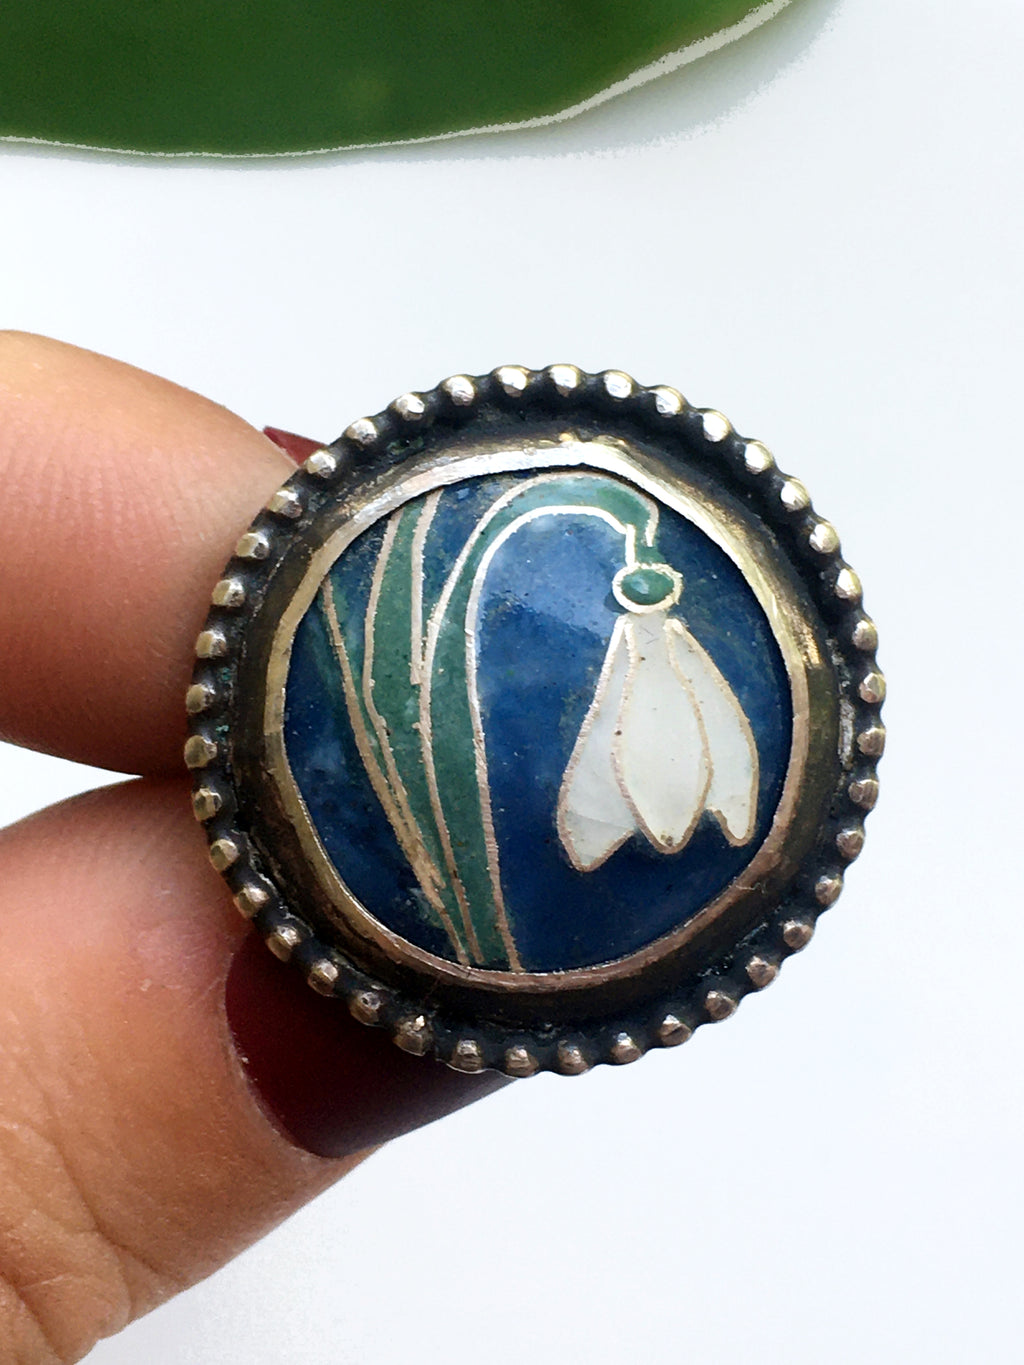 Snowdrop Cloisonné Enamel Sterling Silver Ring-Size 9